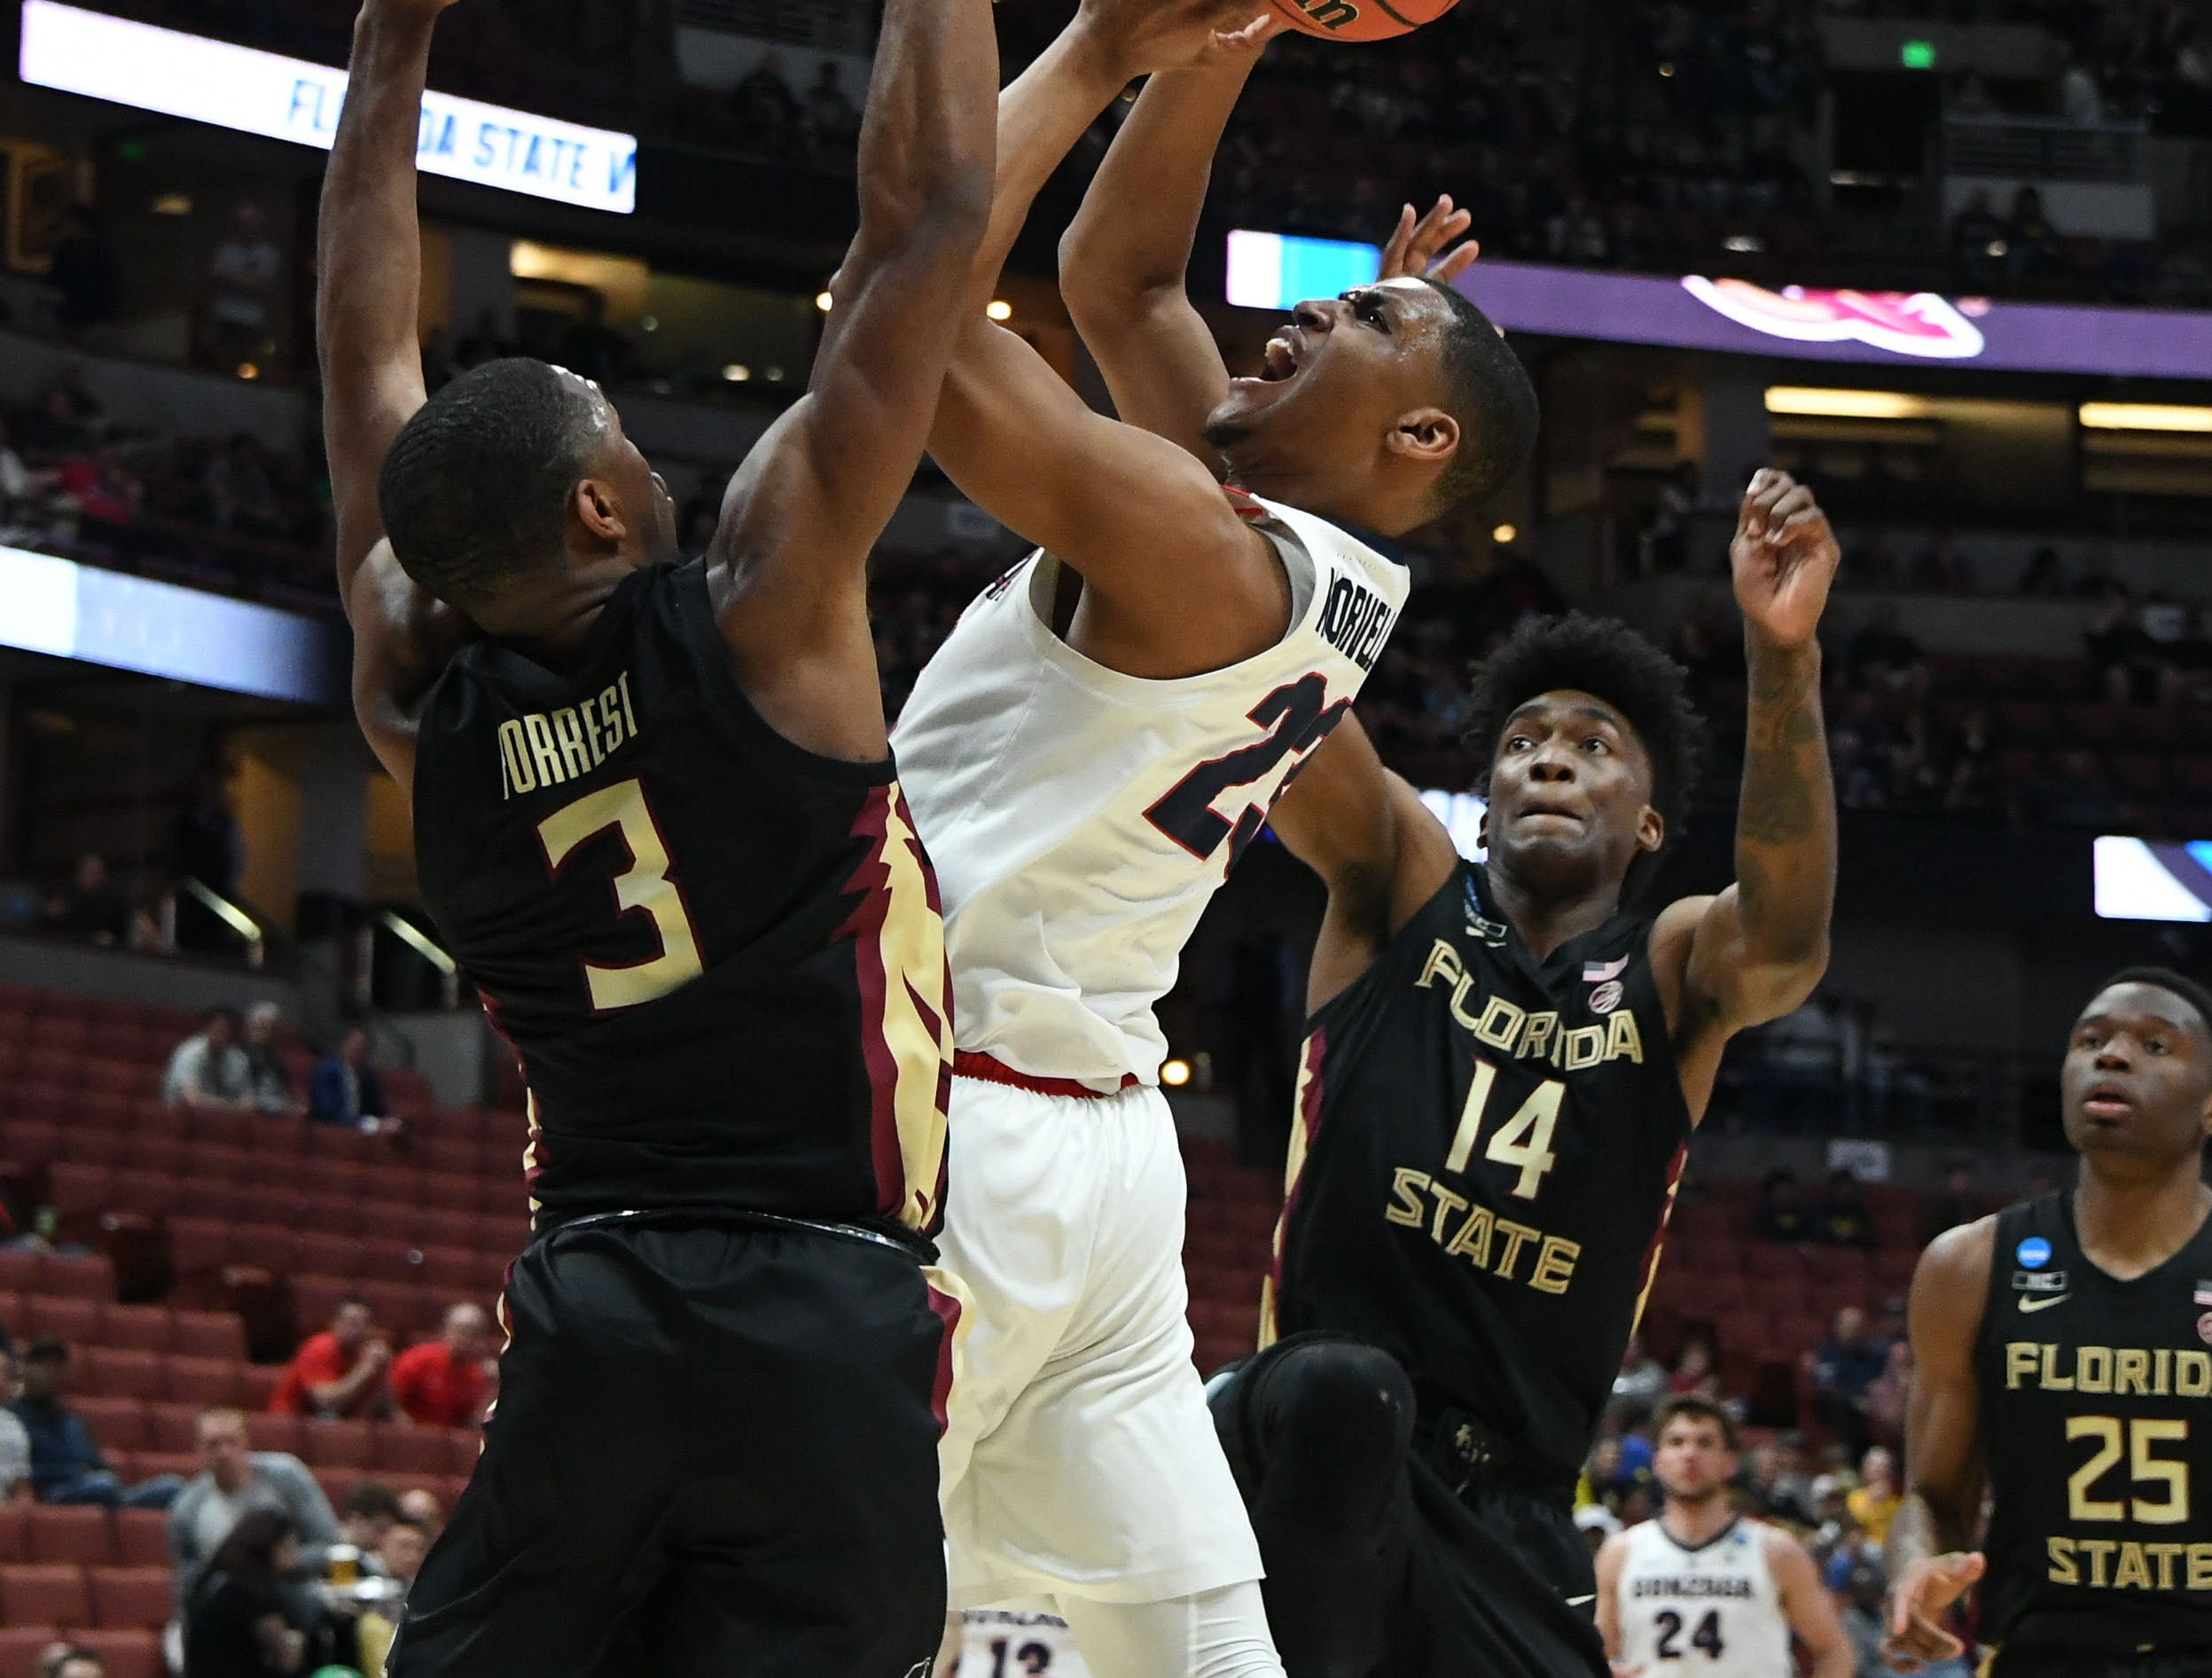 March 28, 2019; Anaheim, CA, USA; Gonzaga Bulldogs guard Zach Norvell Jr. (23) moves to the basket against Florida State Seminoles guard Trent Forrest (3) and guard Terance Mann (14) during the first half in the semifinals of the west regional of the 2019 NCAA Tournament at Honda Center. Mandatory Credit: Richard Mackson-USA TODAY Sports